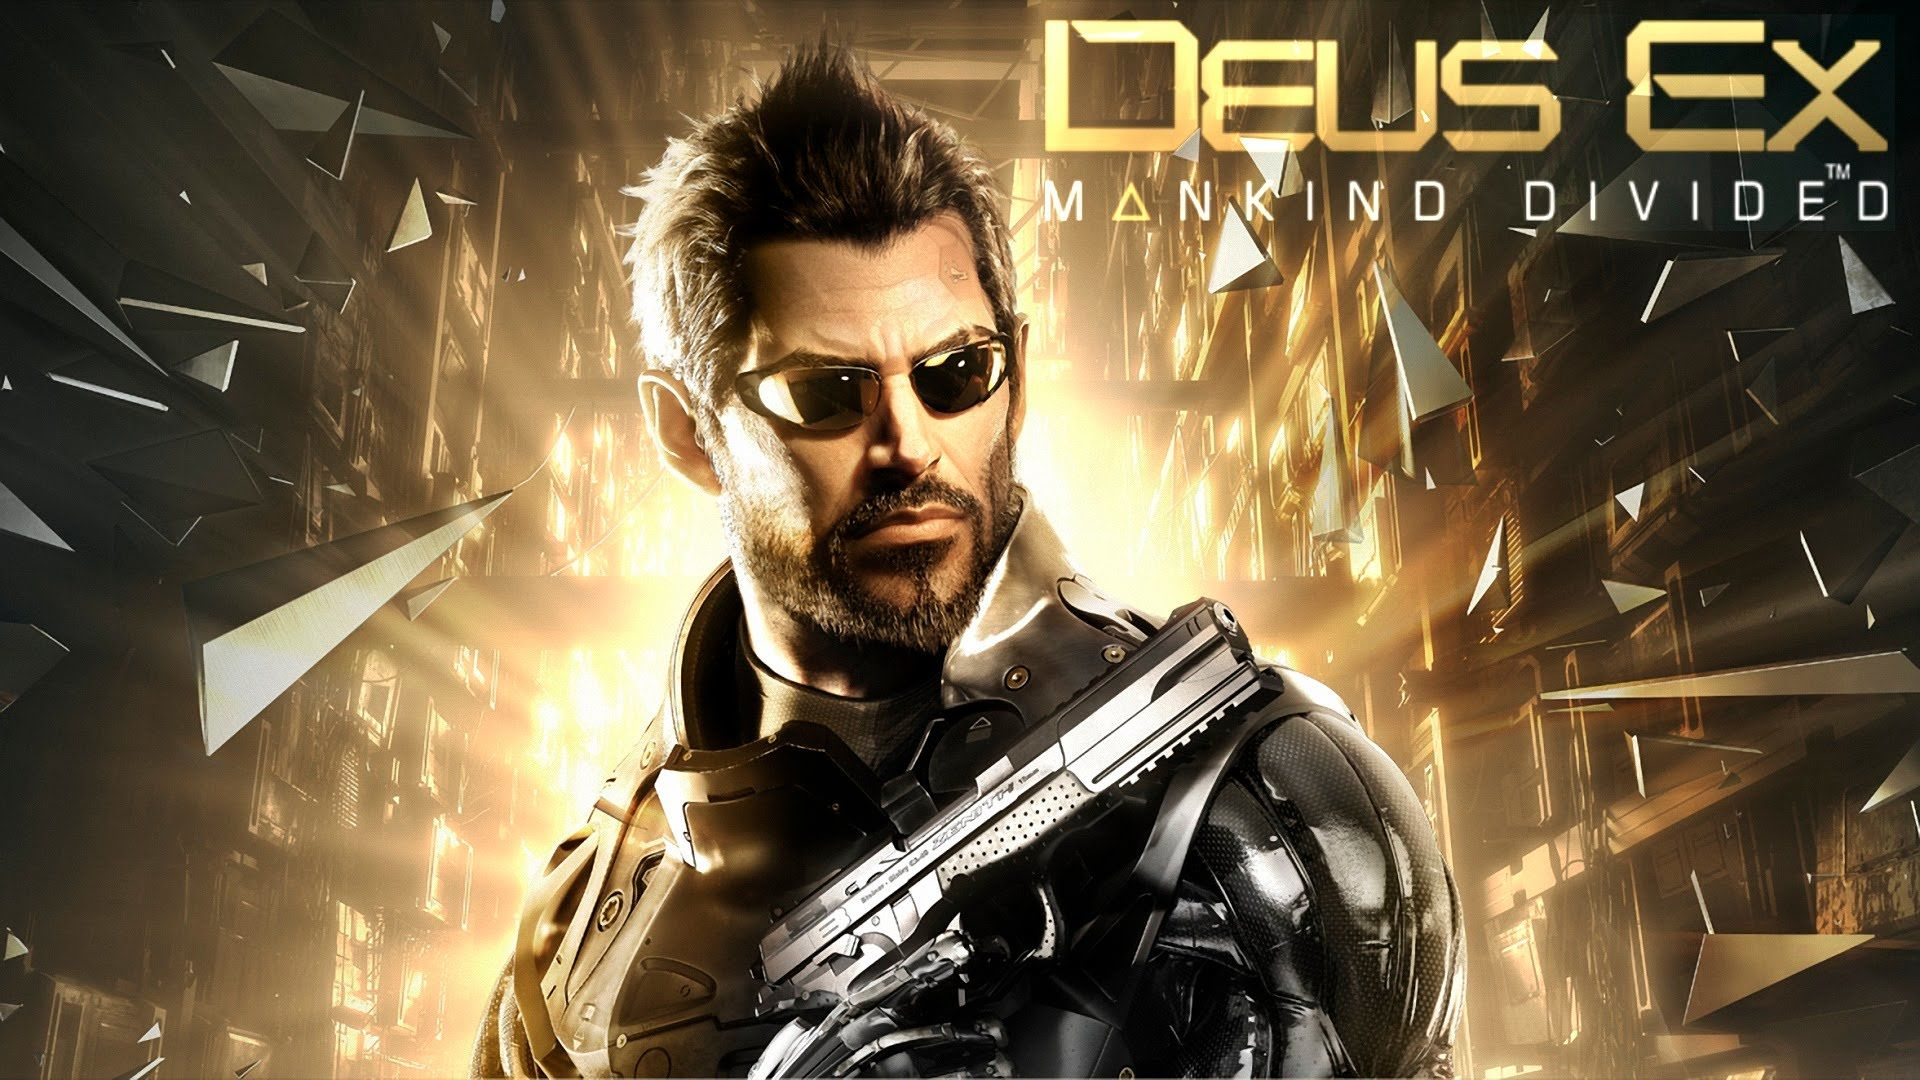 Deus Ex: Mankind Divided [Steam Gift]